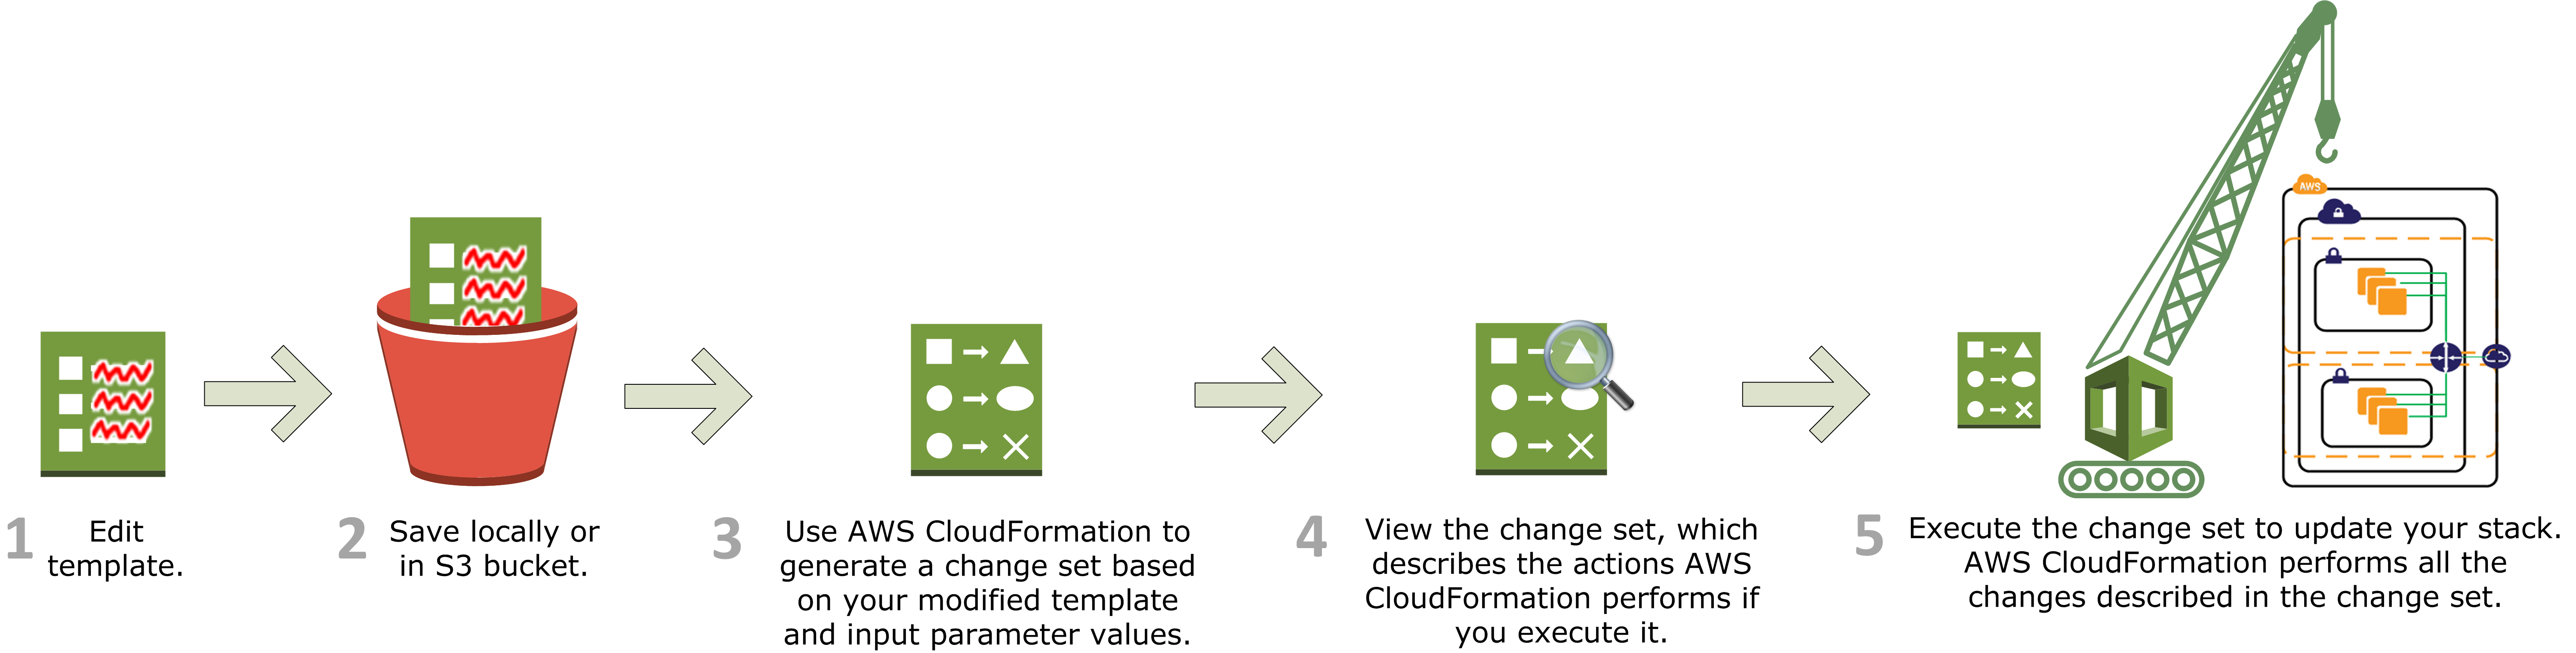 How does aws cloudformation work aws cloudformation after reviewing the changes you can execute the change set to update your stack or you can create a new change set the following diagram summarizes the maxwellsz